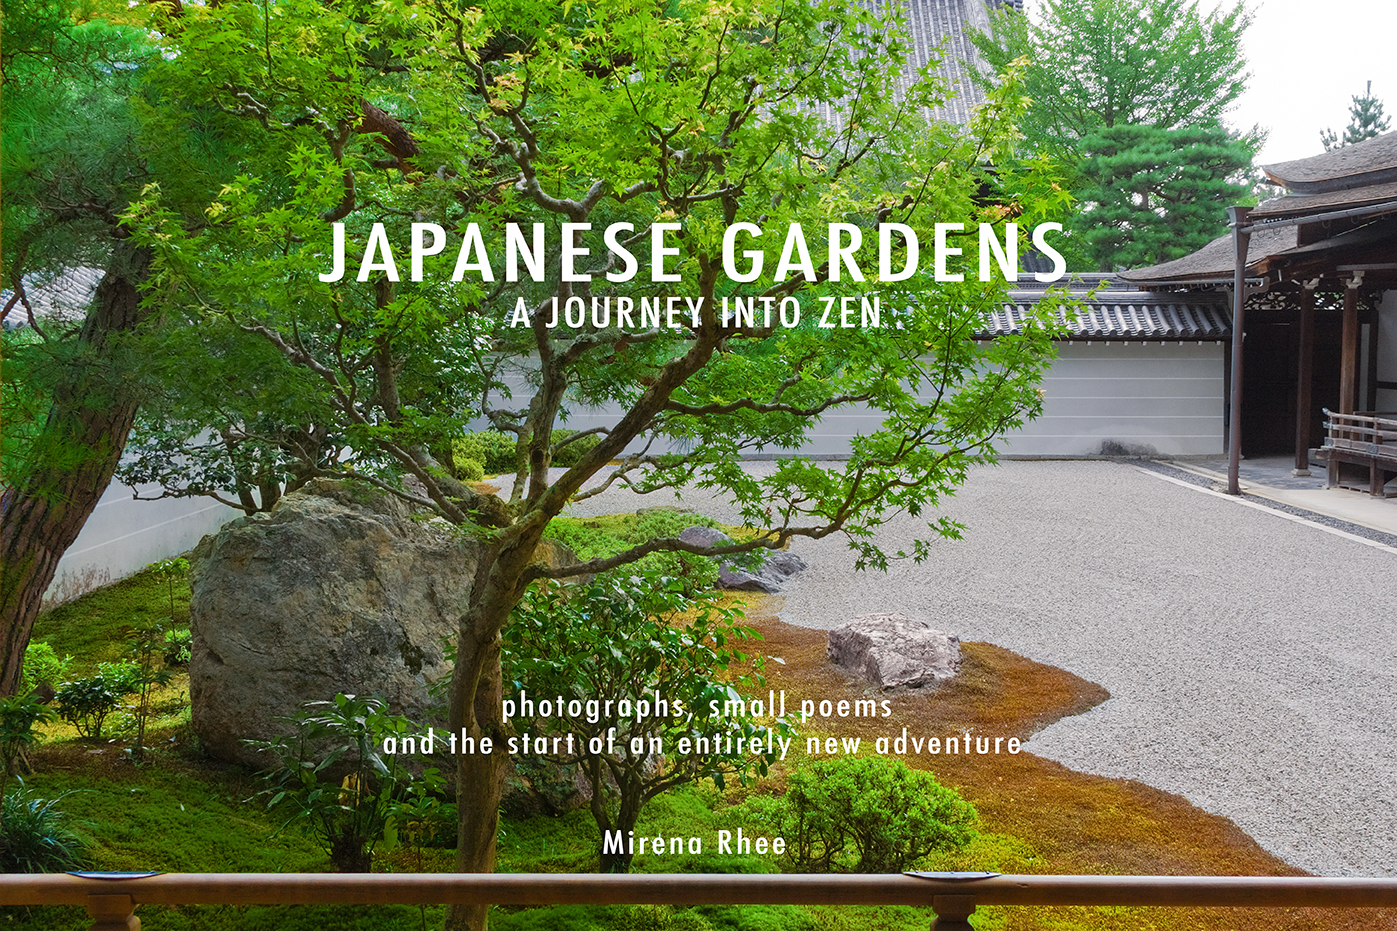 Japanese Gardens: A Journey Into Zen